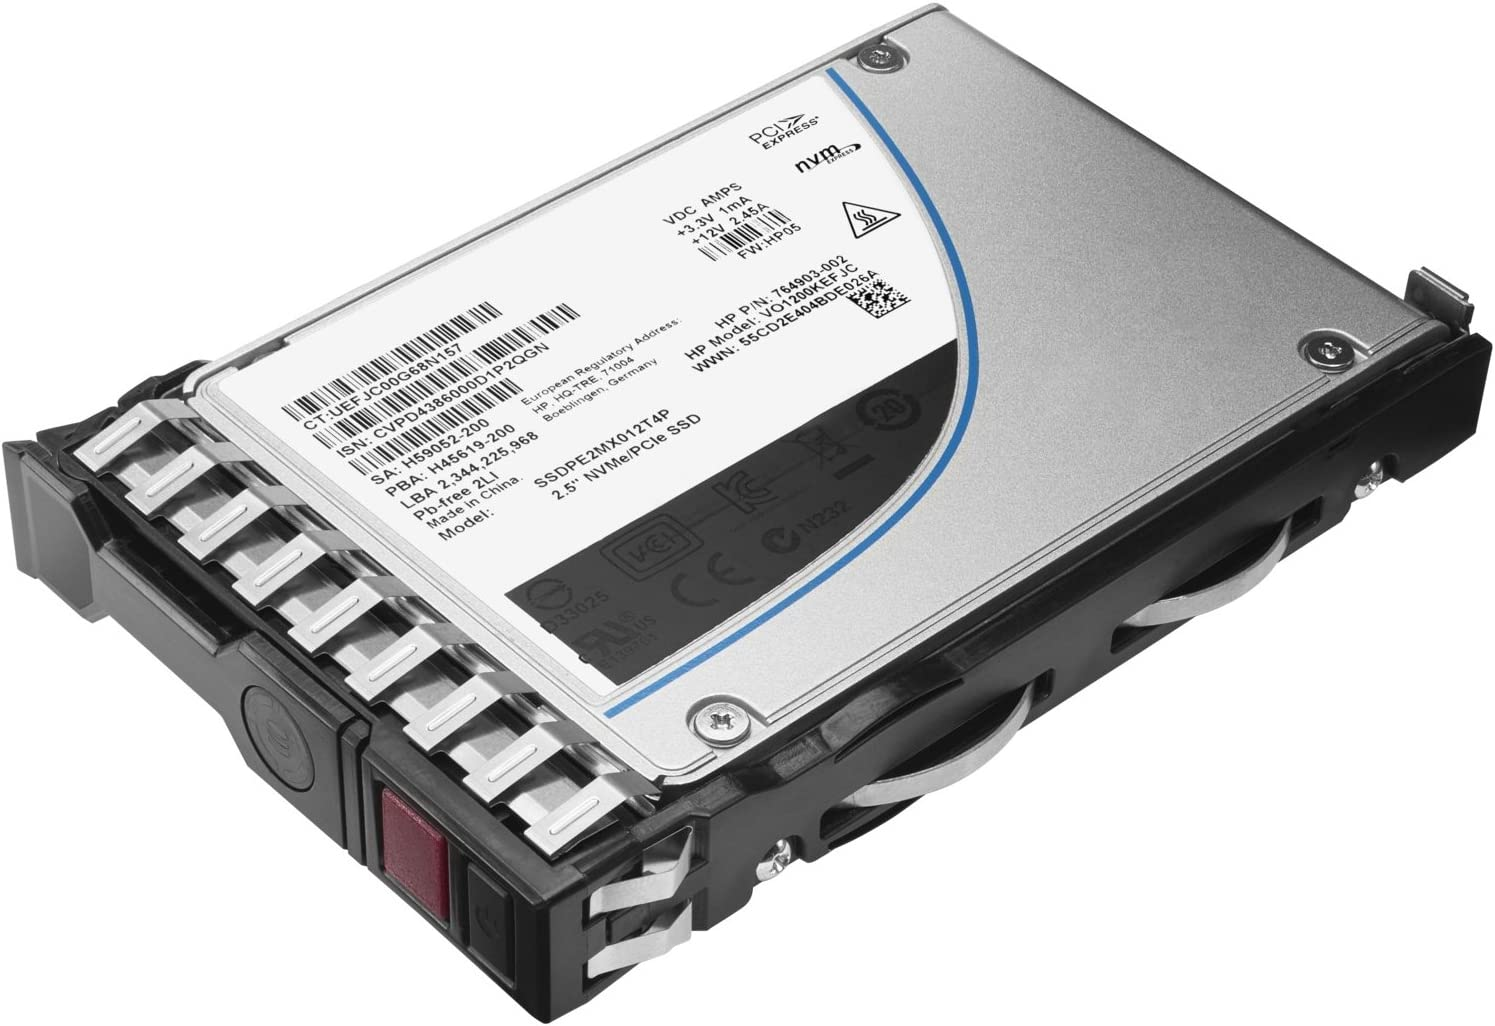 HP Office Mixed Use-3 Max 43% Excellent OFF Solid Serial_Interf - Hot-Swap State Drive